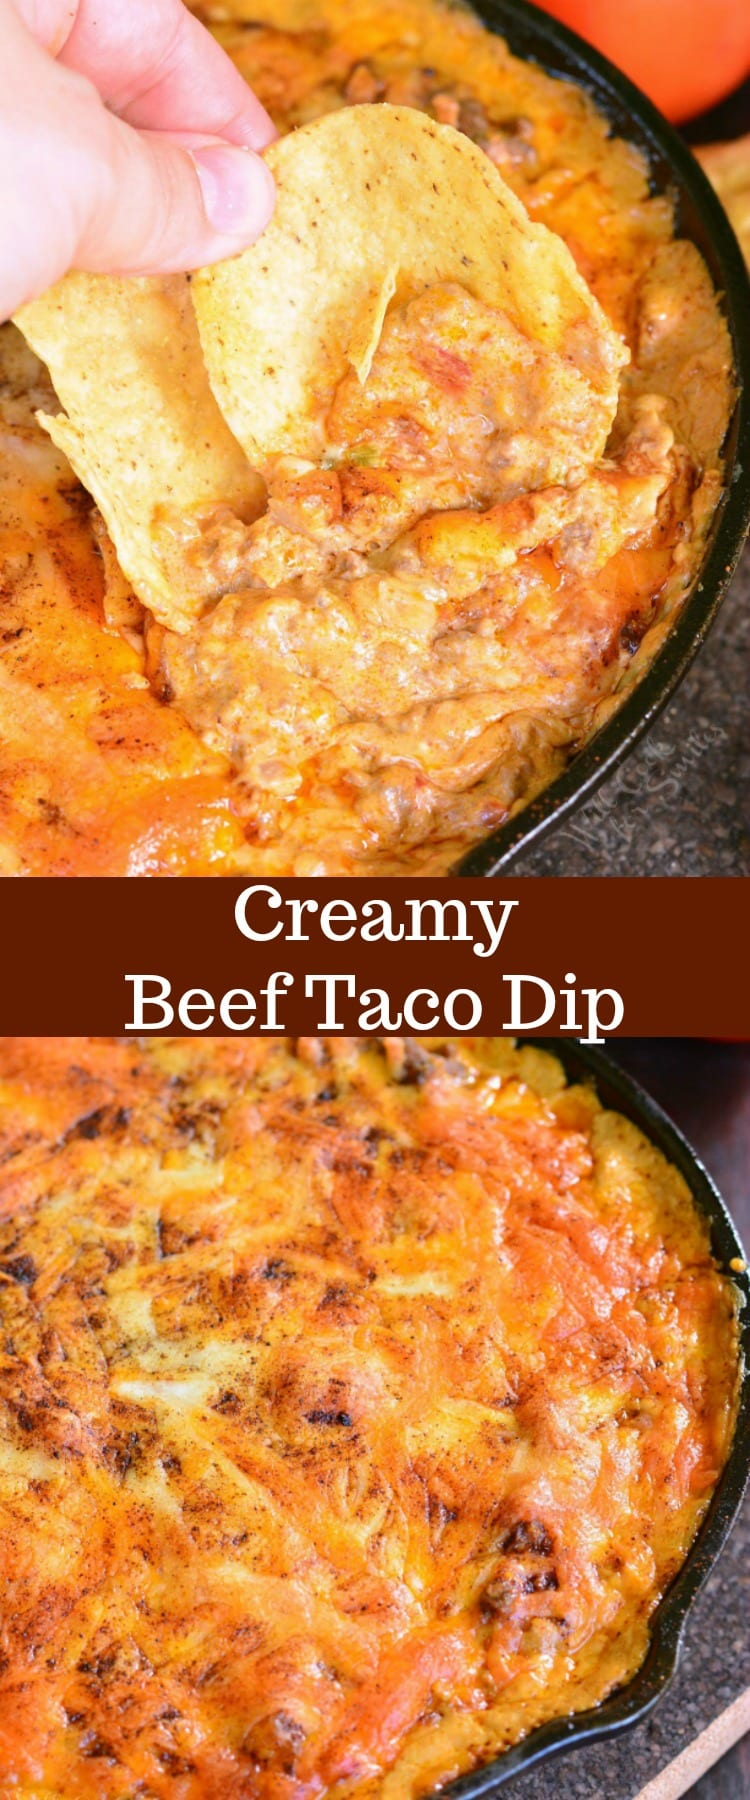 Creamy Beef Taco Dip. Creamy, cheesy, delicious hot beef taco dip recipe that will be perfect for a party or a family dinner. This beef taco dip is made with ground beef, veggies, cheese, and some more cheese. #dip #homemade #hot #beef #groundbeef #taco #cheesy #creamy #appetizer